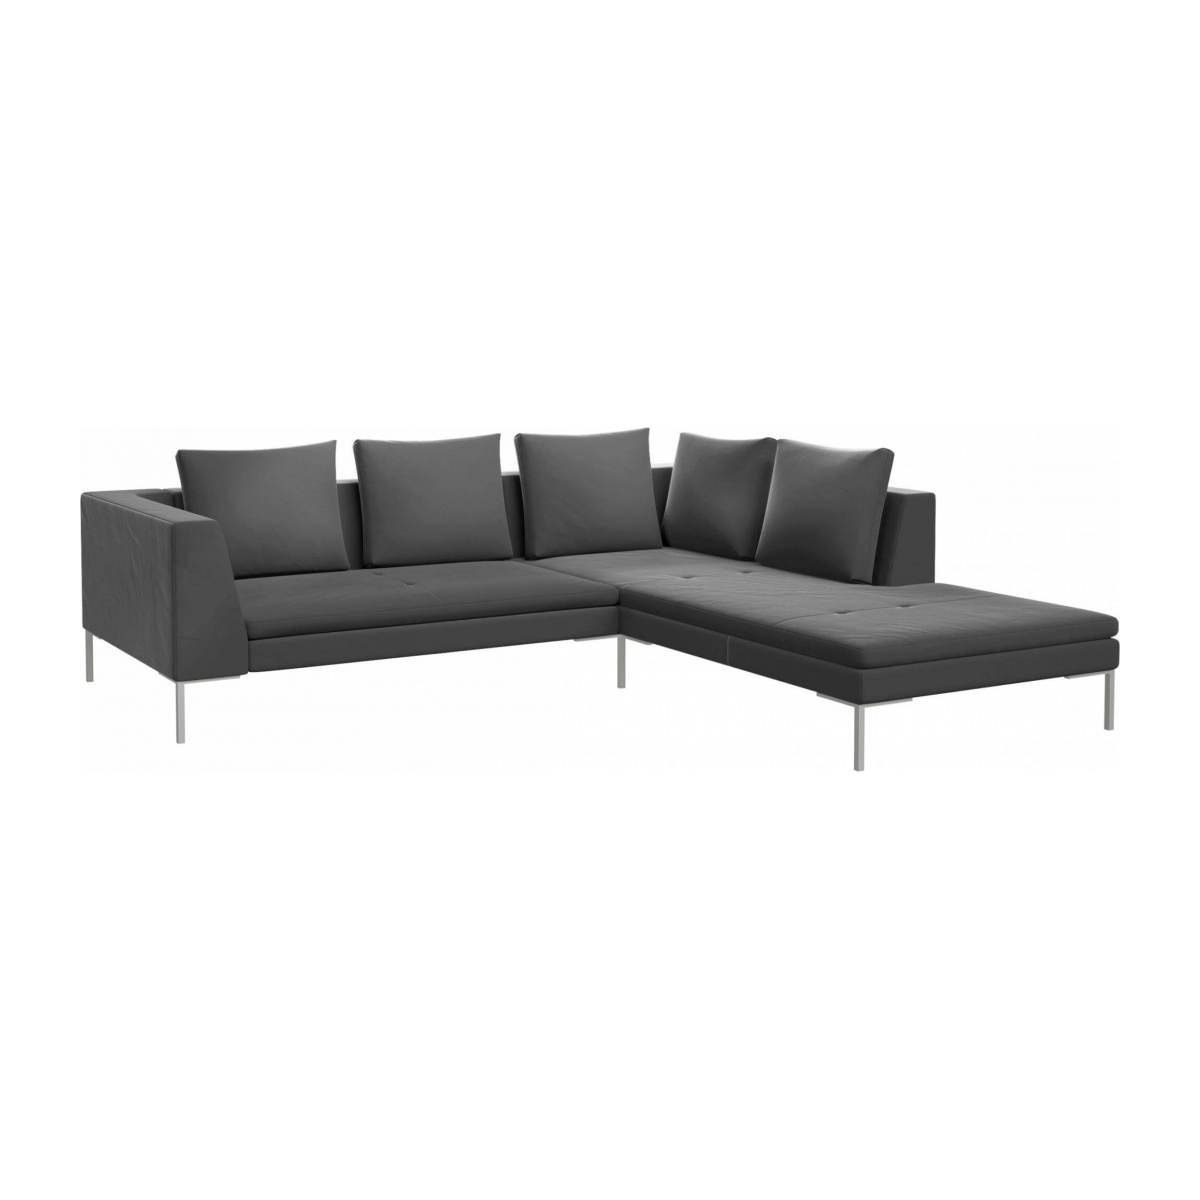 2 seater sofa with chaise longue on the right in Super Velvet fabric, silver grey  n°2